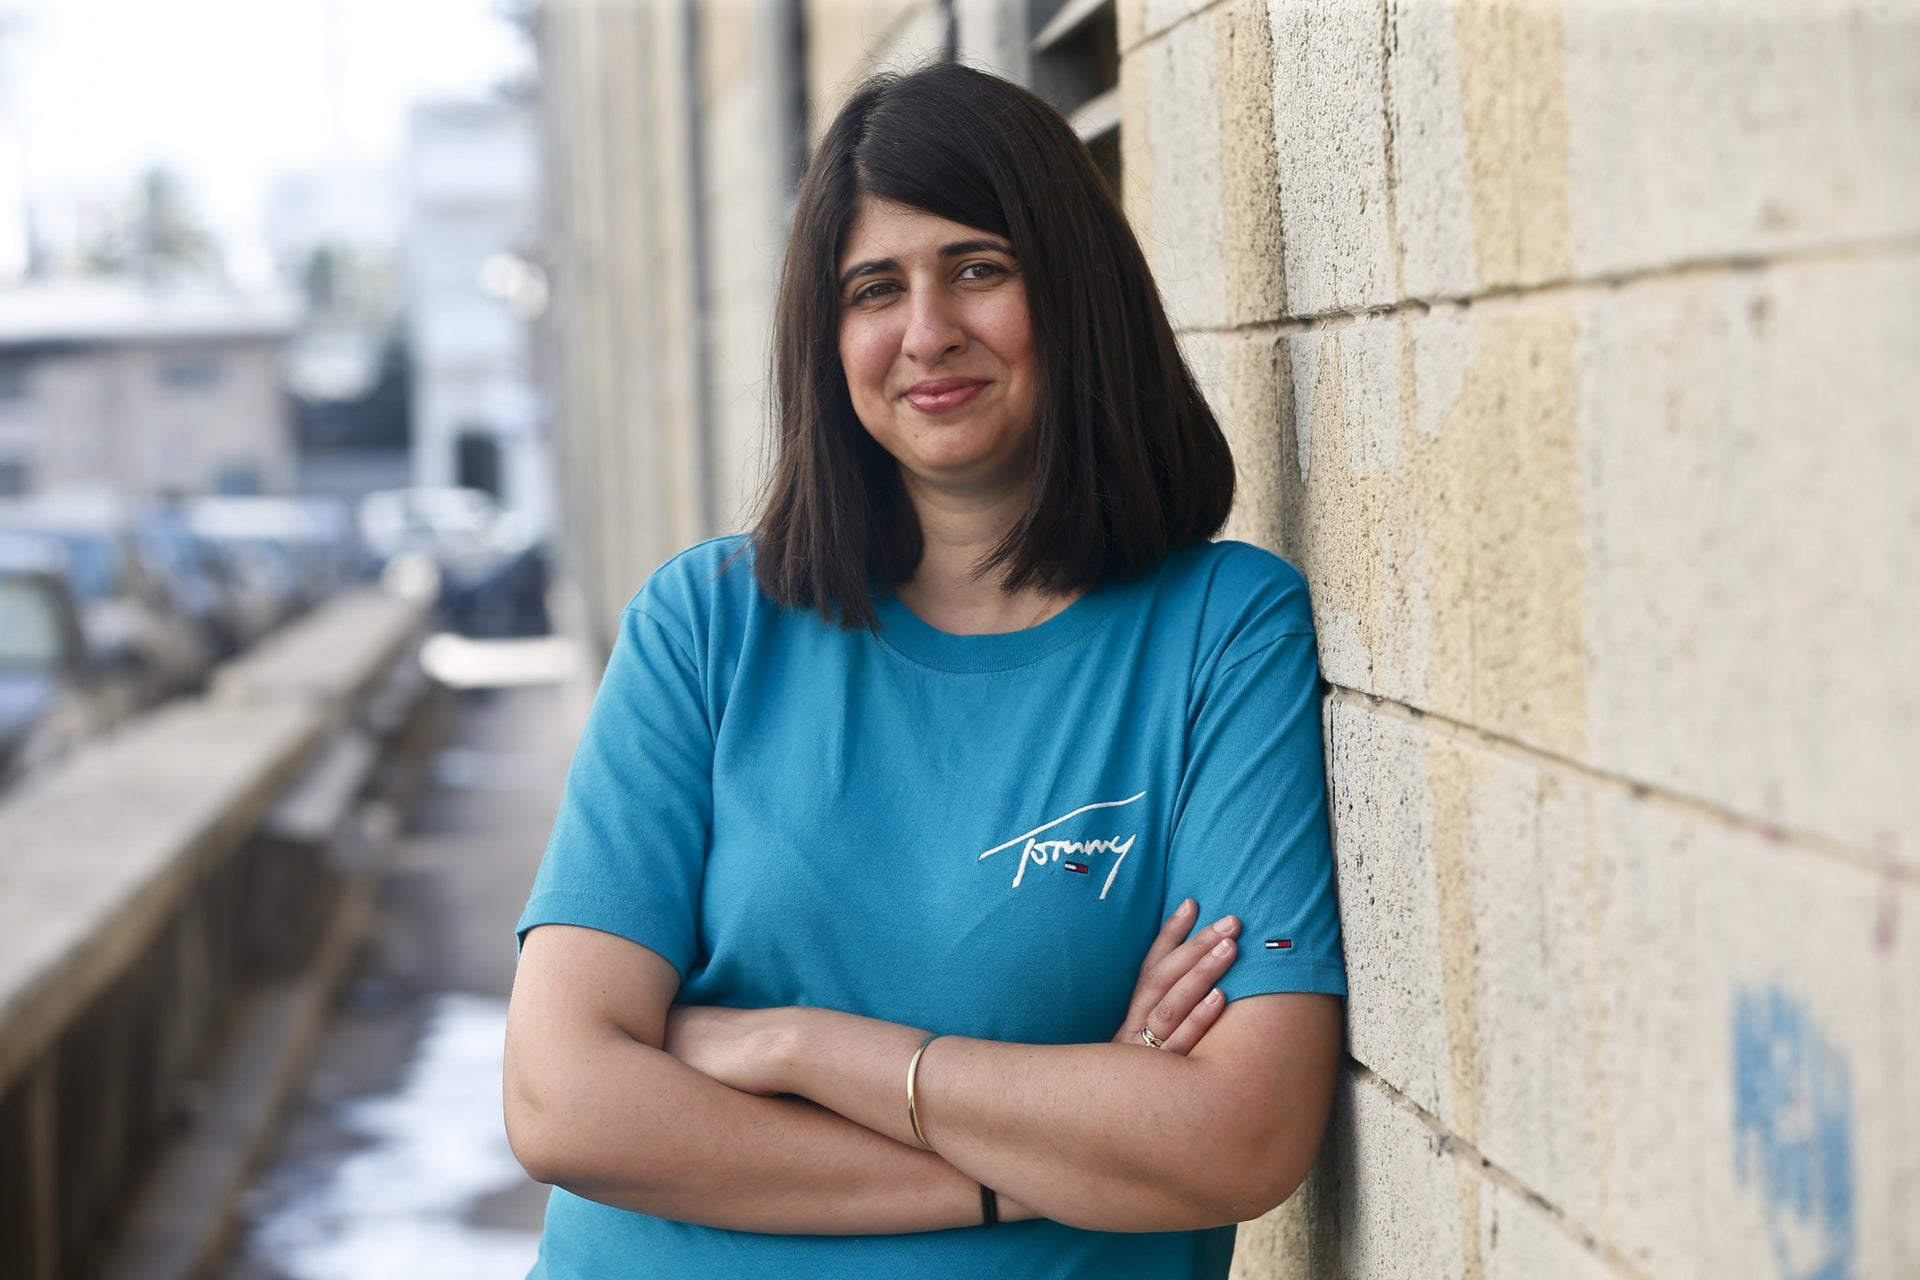 Liron Slonimsky, 33, the founder and CEO of the Israeli company Awear Solutions